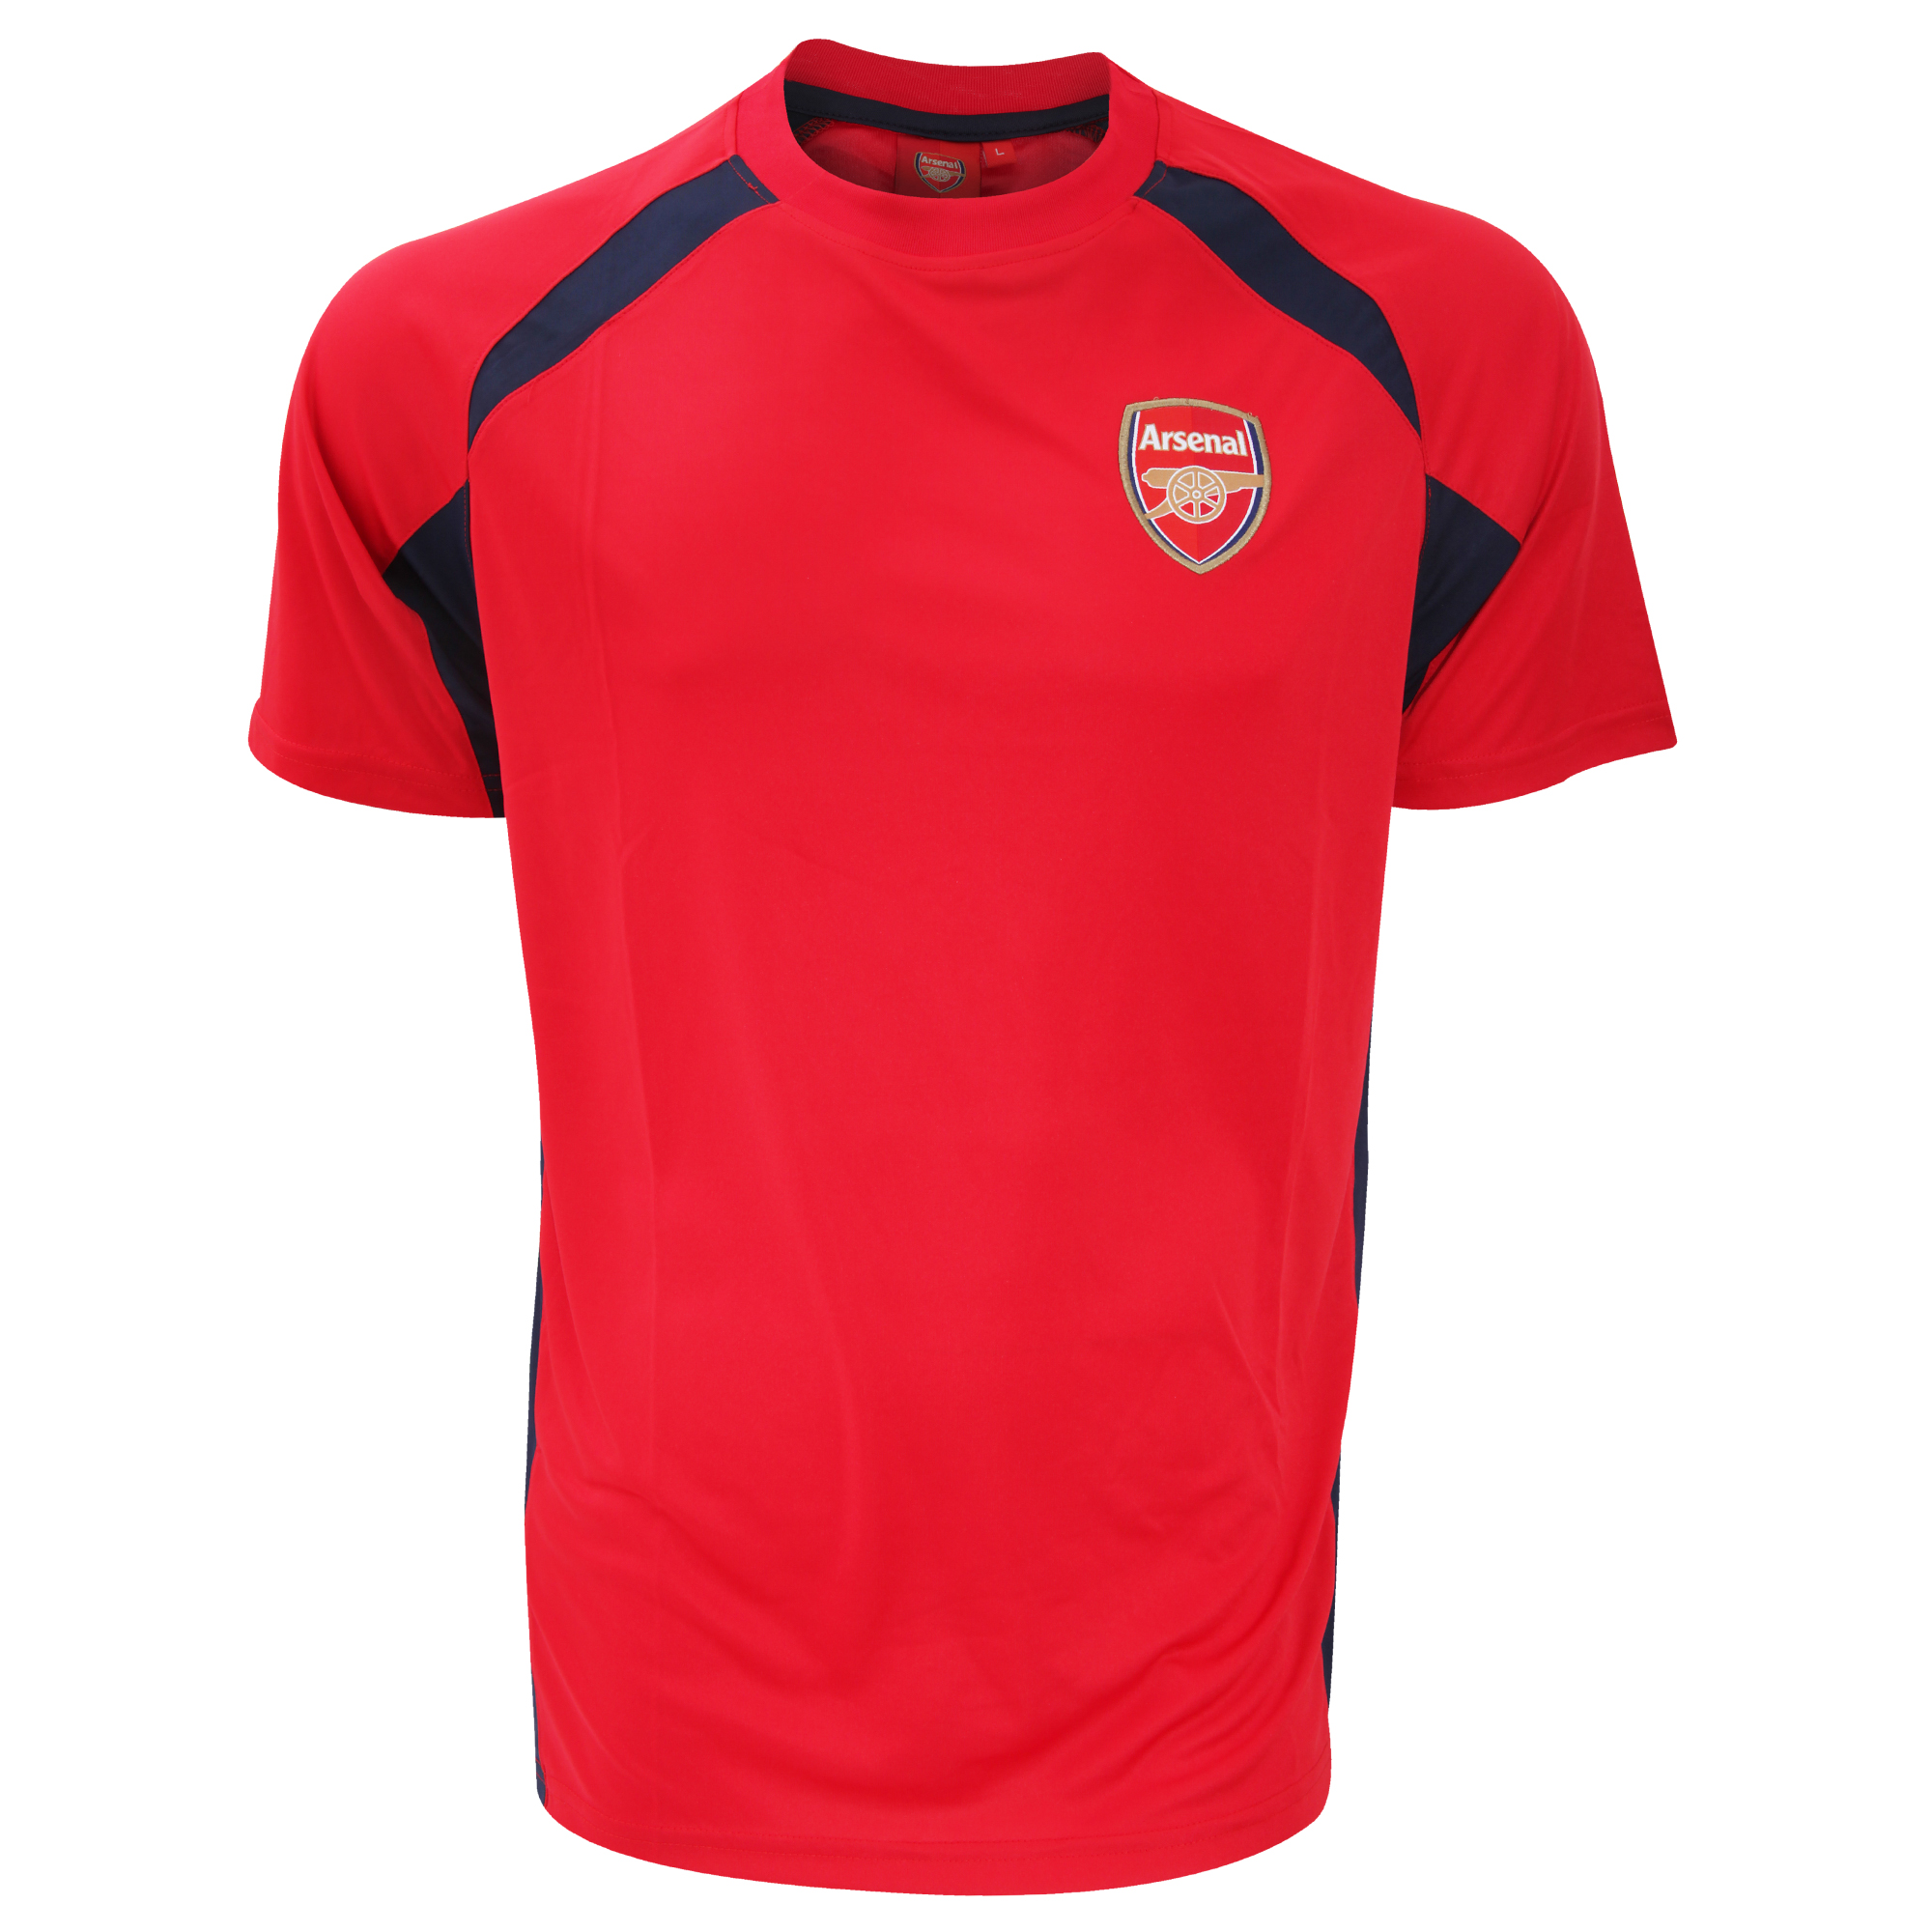 Arsenal fc mens official football crest sports panel t for Arsenal t shirts sale